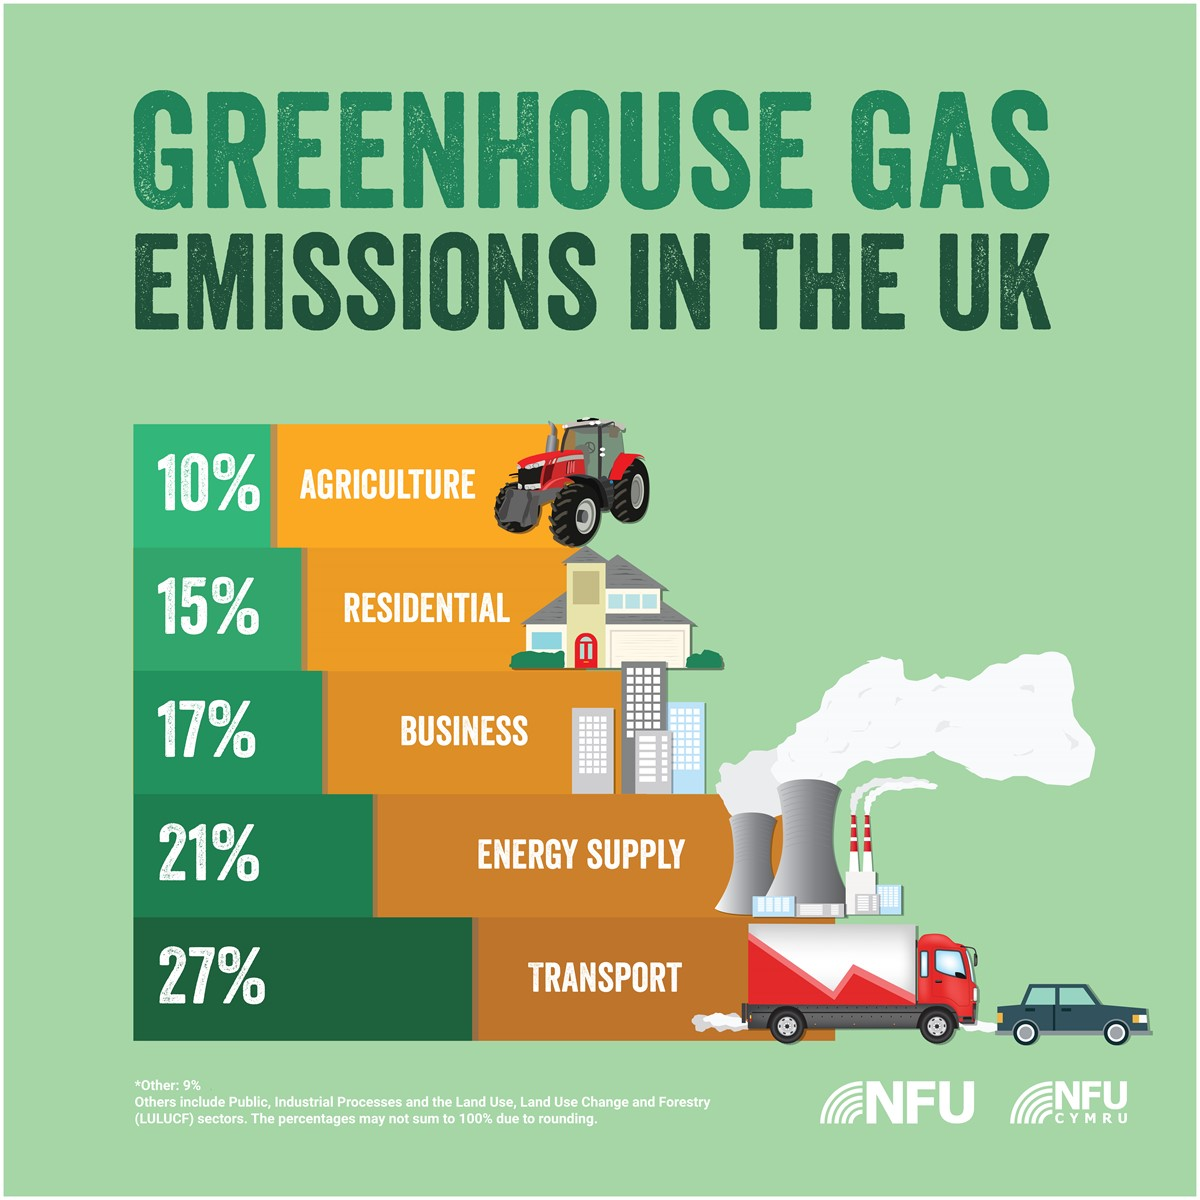 Greenhouse Gas Emissions infographic August 2019_67721